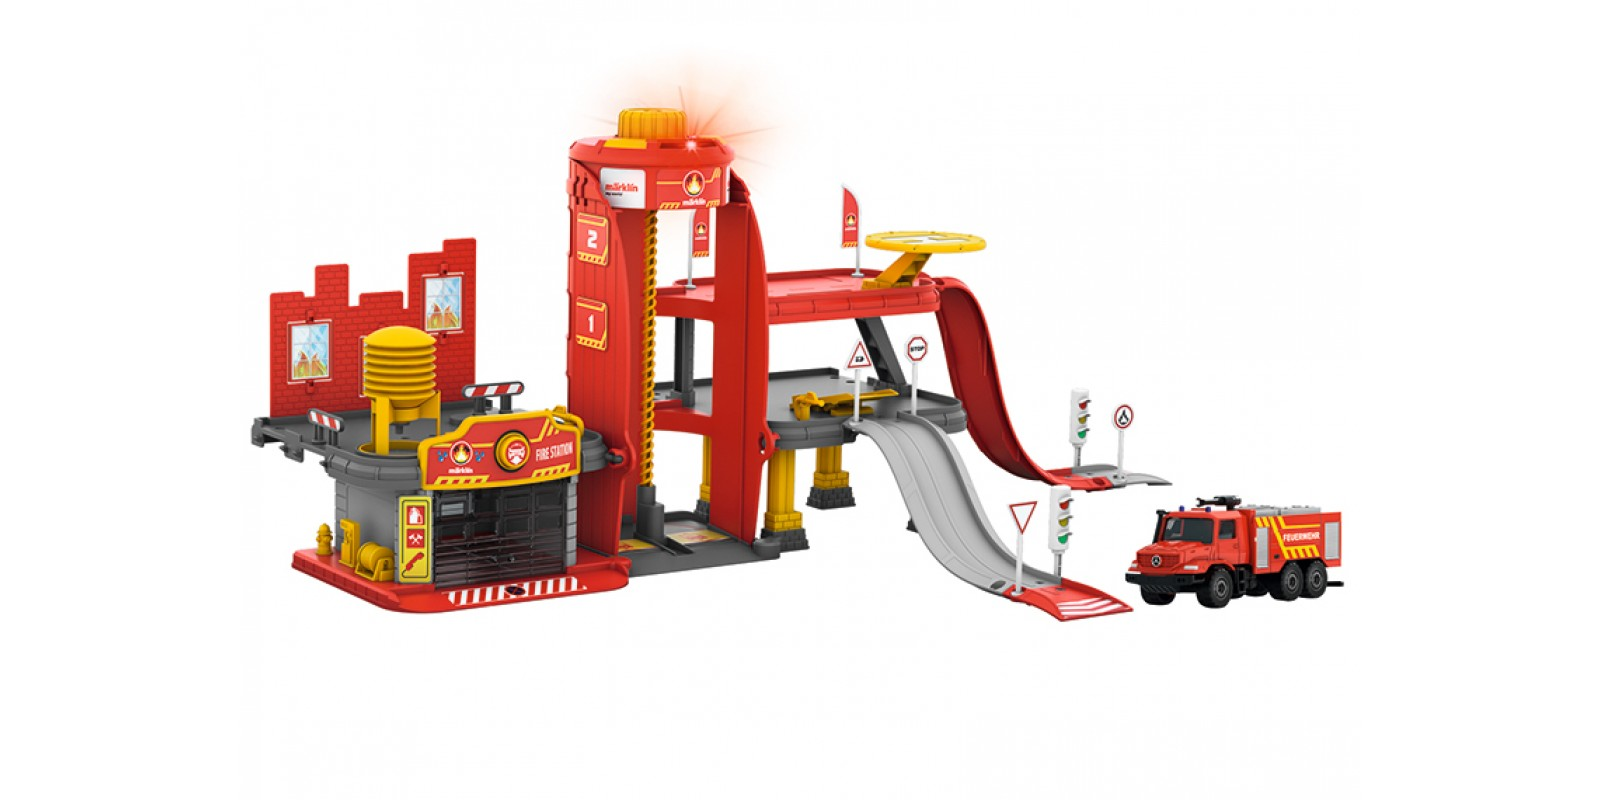 72219 Märklin my world – Fire Station with Light and Sound Function